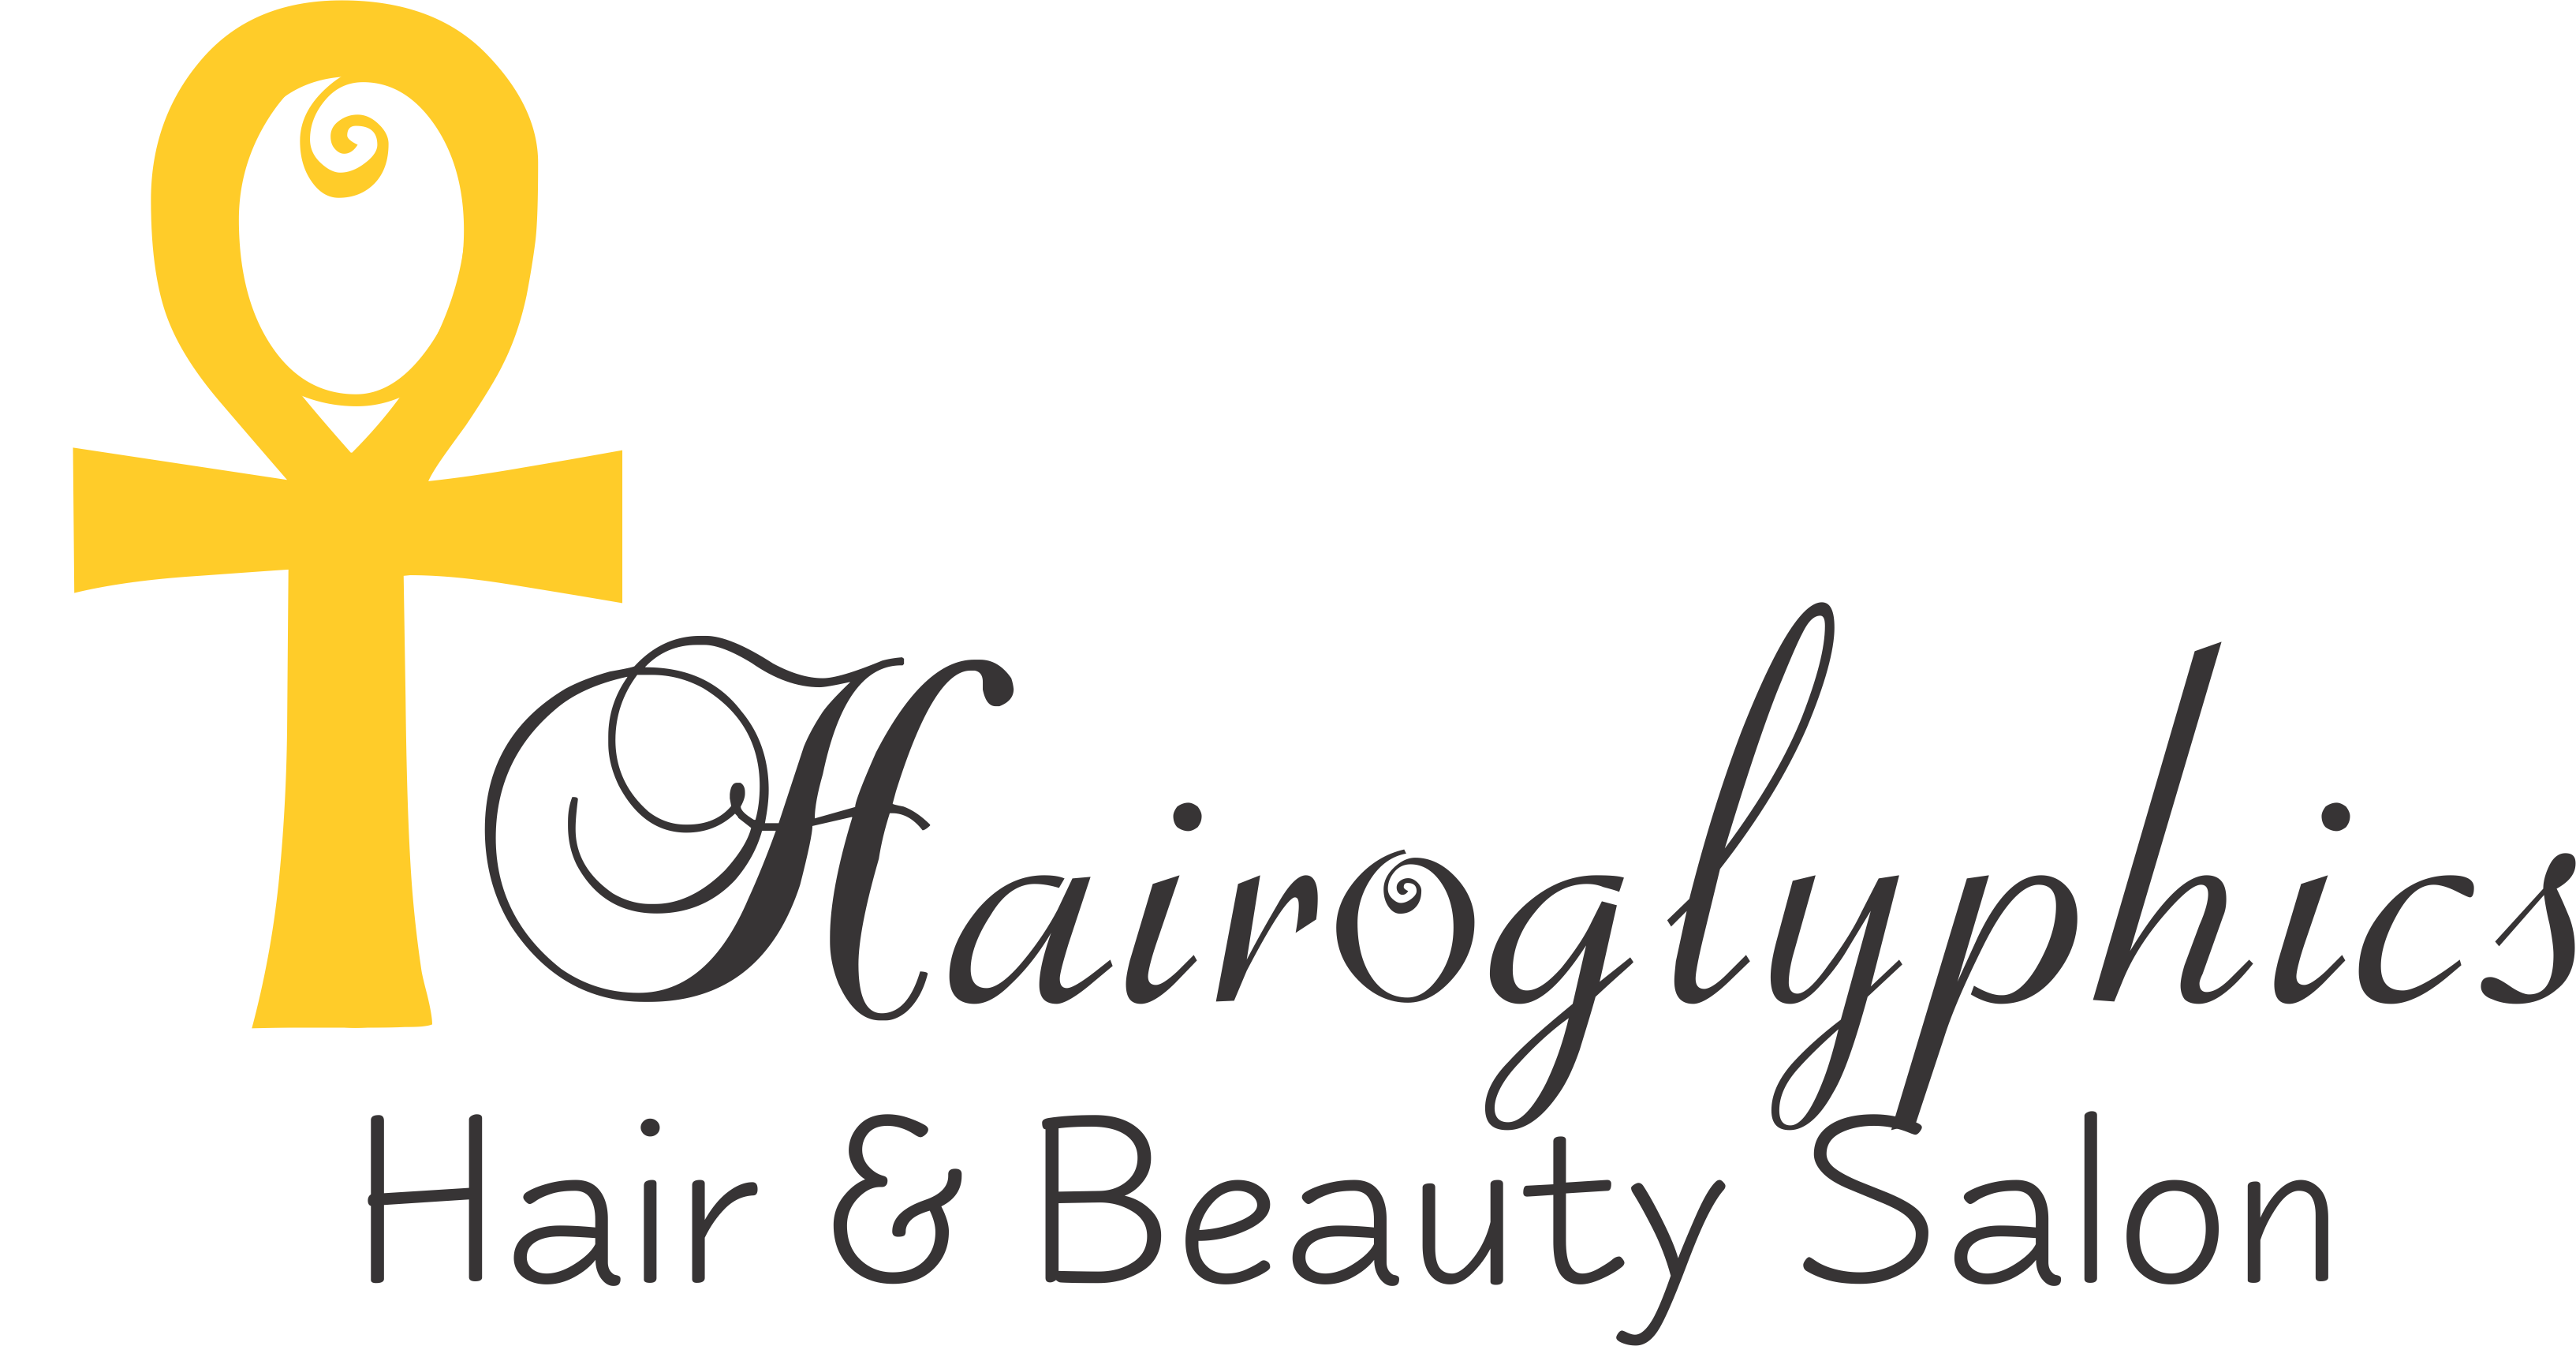 Hairoglyphics Hair & Beauty Salon